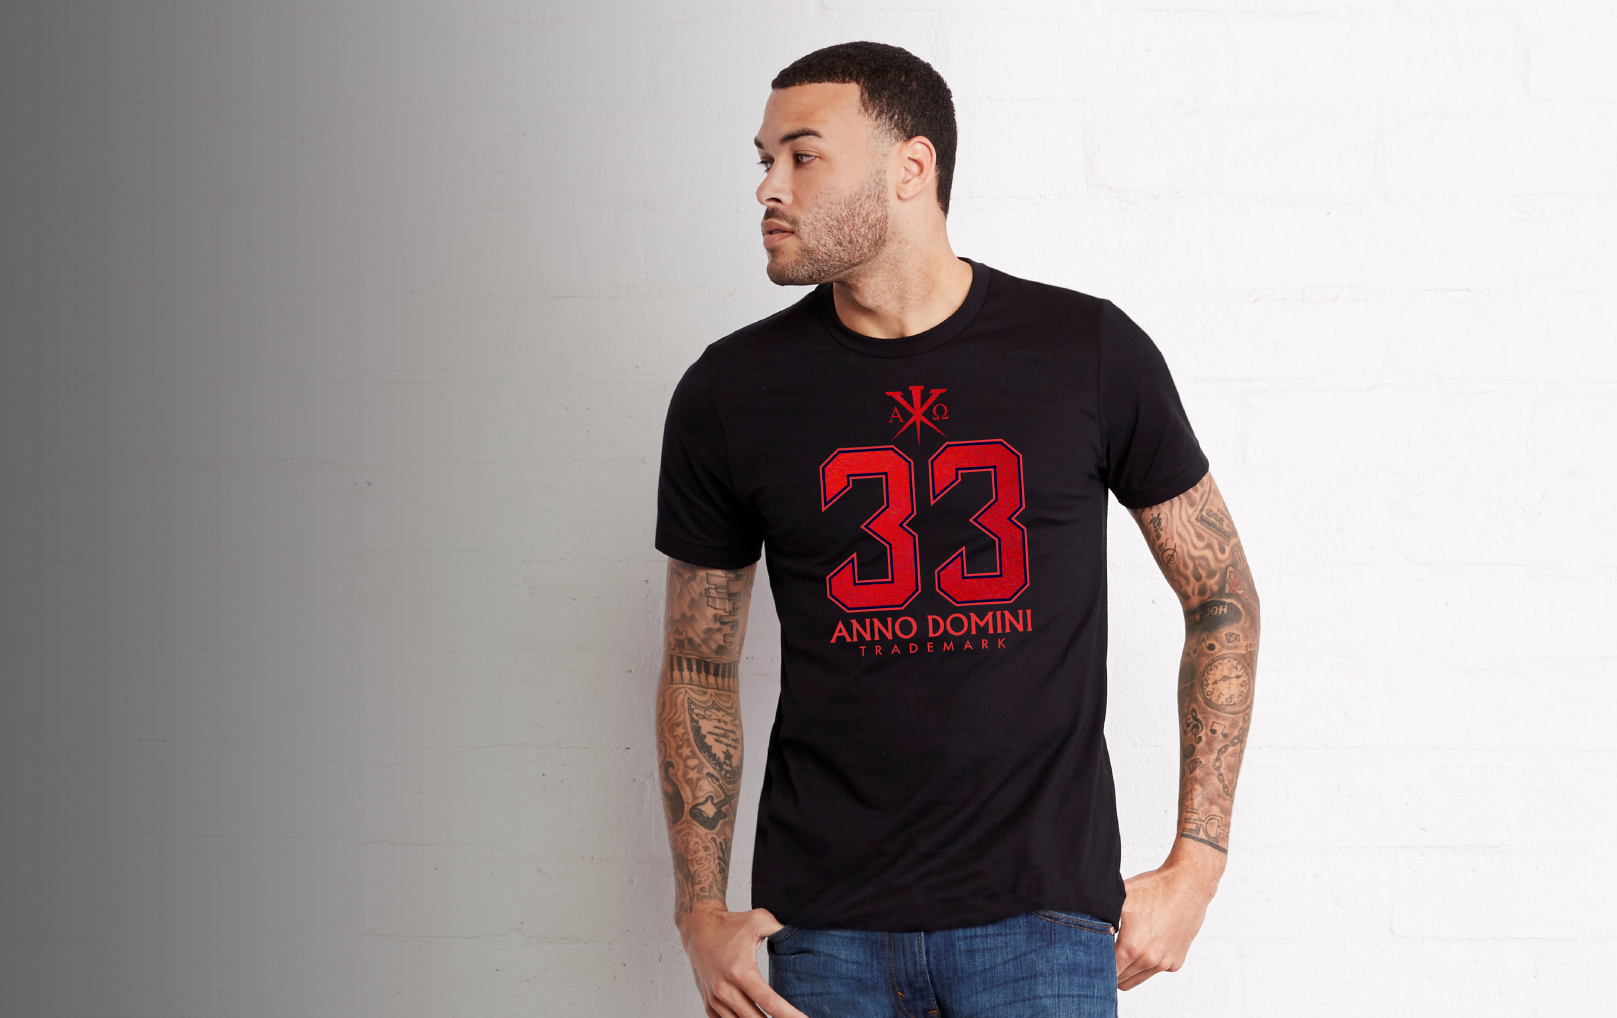 A heavily tattooed man standing on a gray and white backdrop, wearing a black 33 Anno Domini shirt with red embellishment.